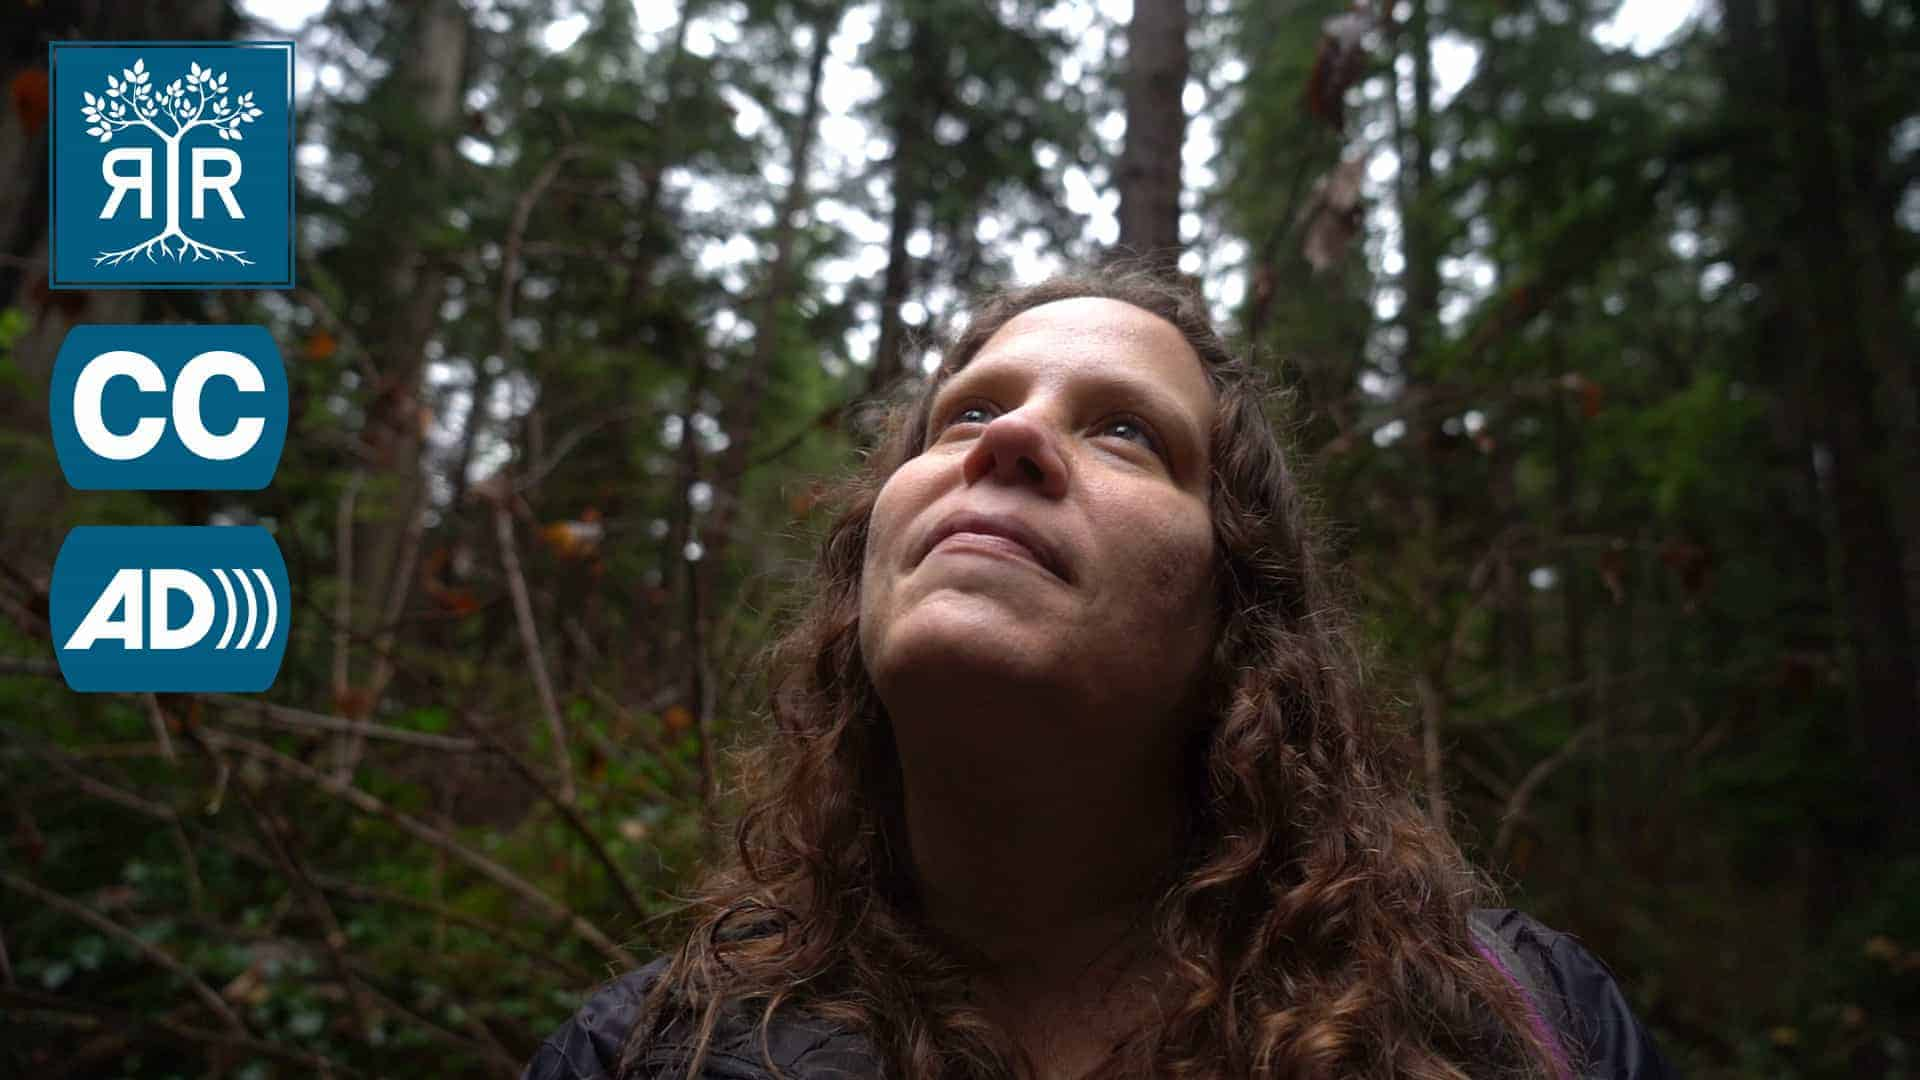 A White person with brown wavy hair looks up towards the sky in a forest. There is a Rooted in Rights icon, a Closed Captioning icon, and an Audio Description icon on the left of the image.